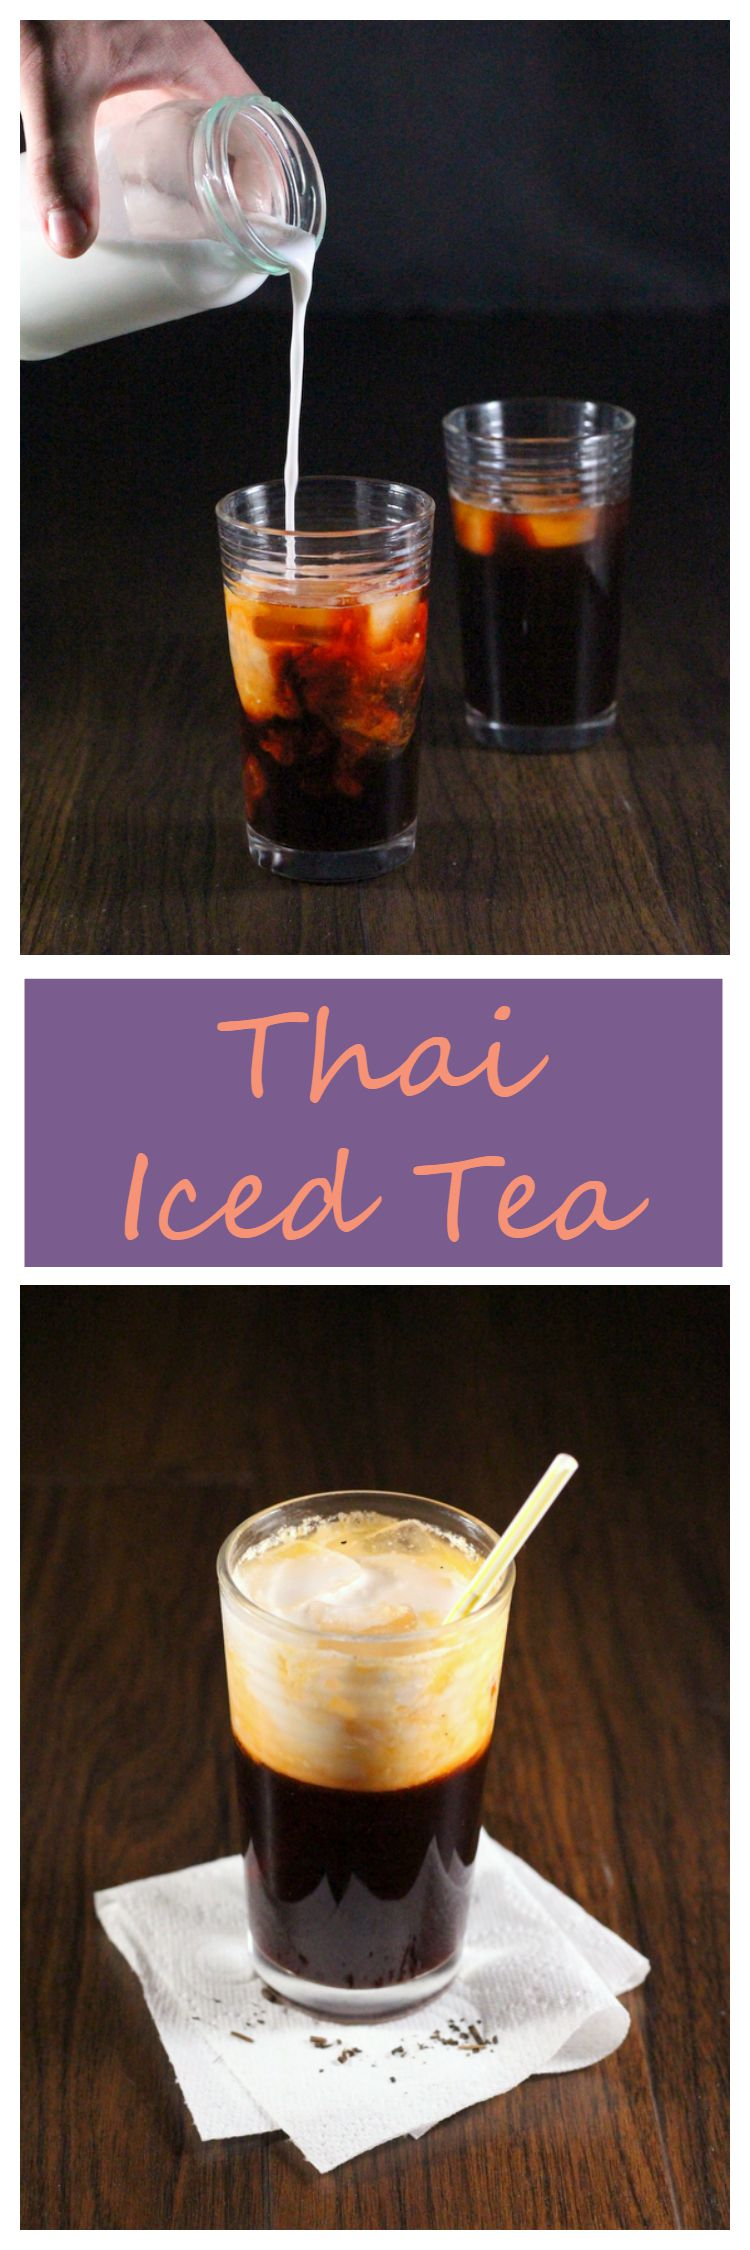 Thai Iced Tea Banner